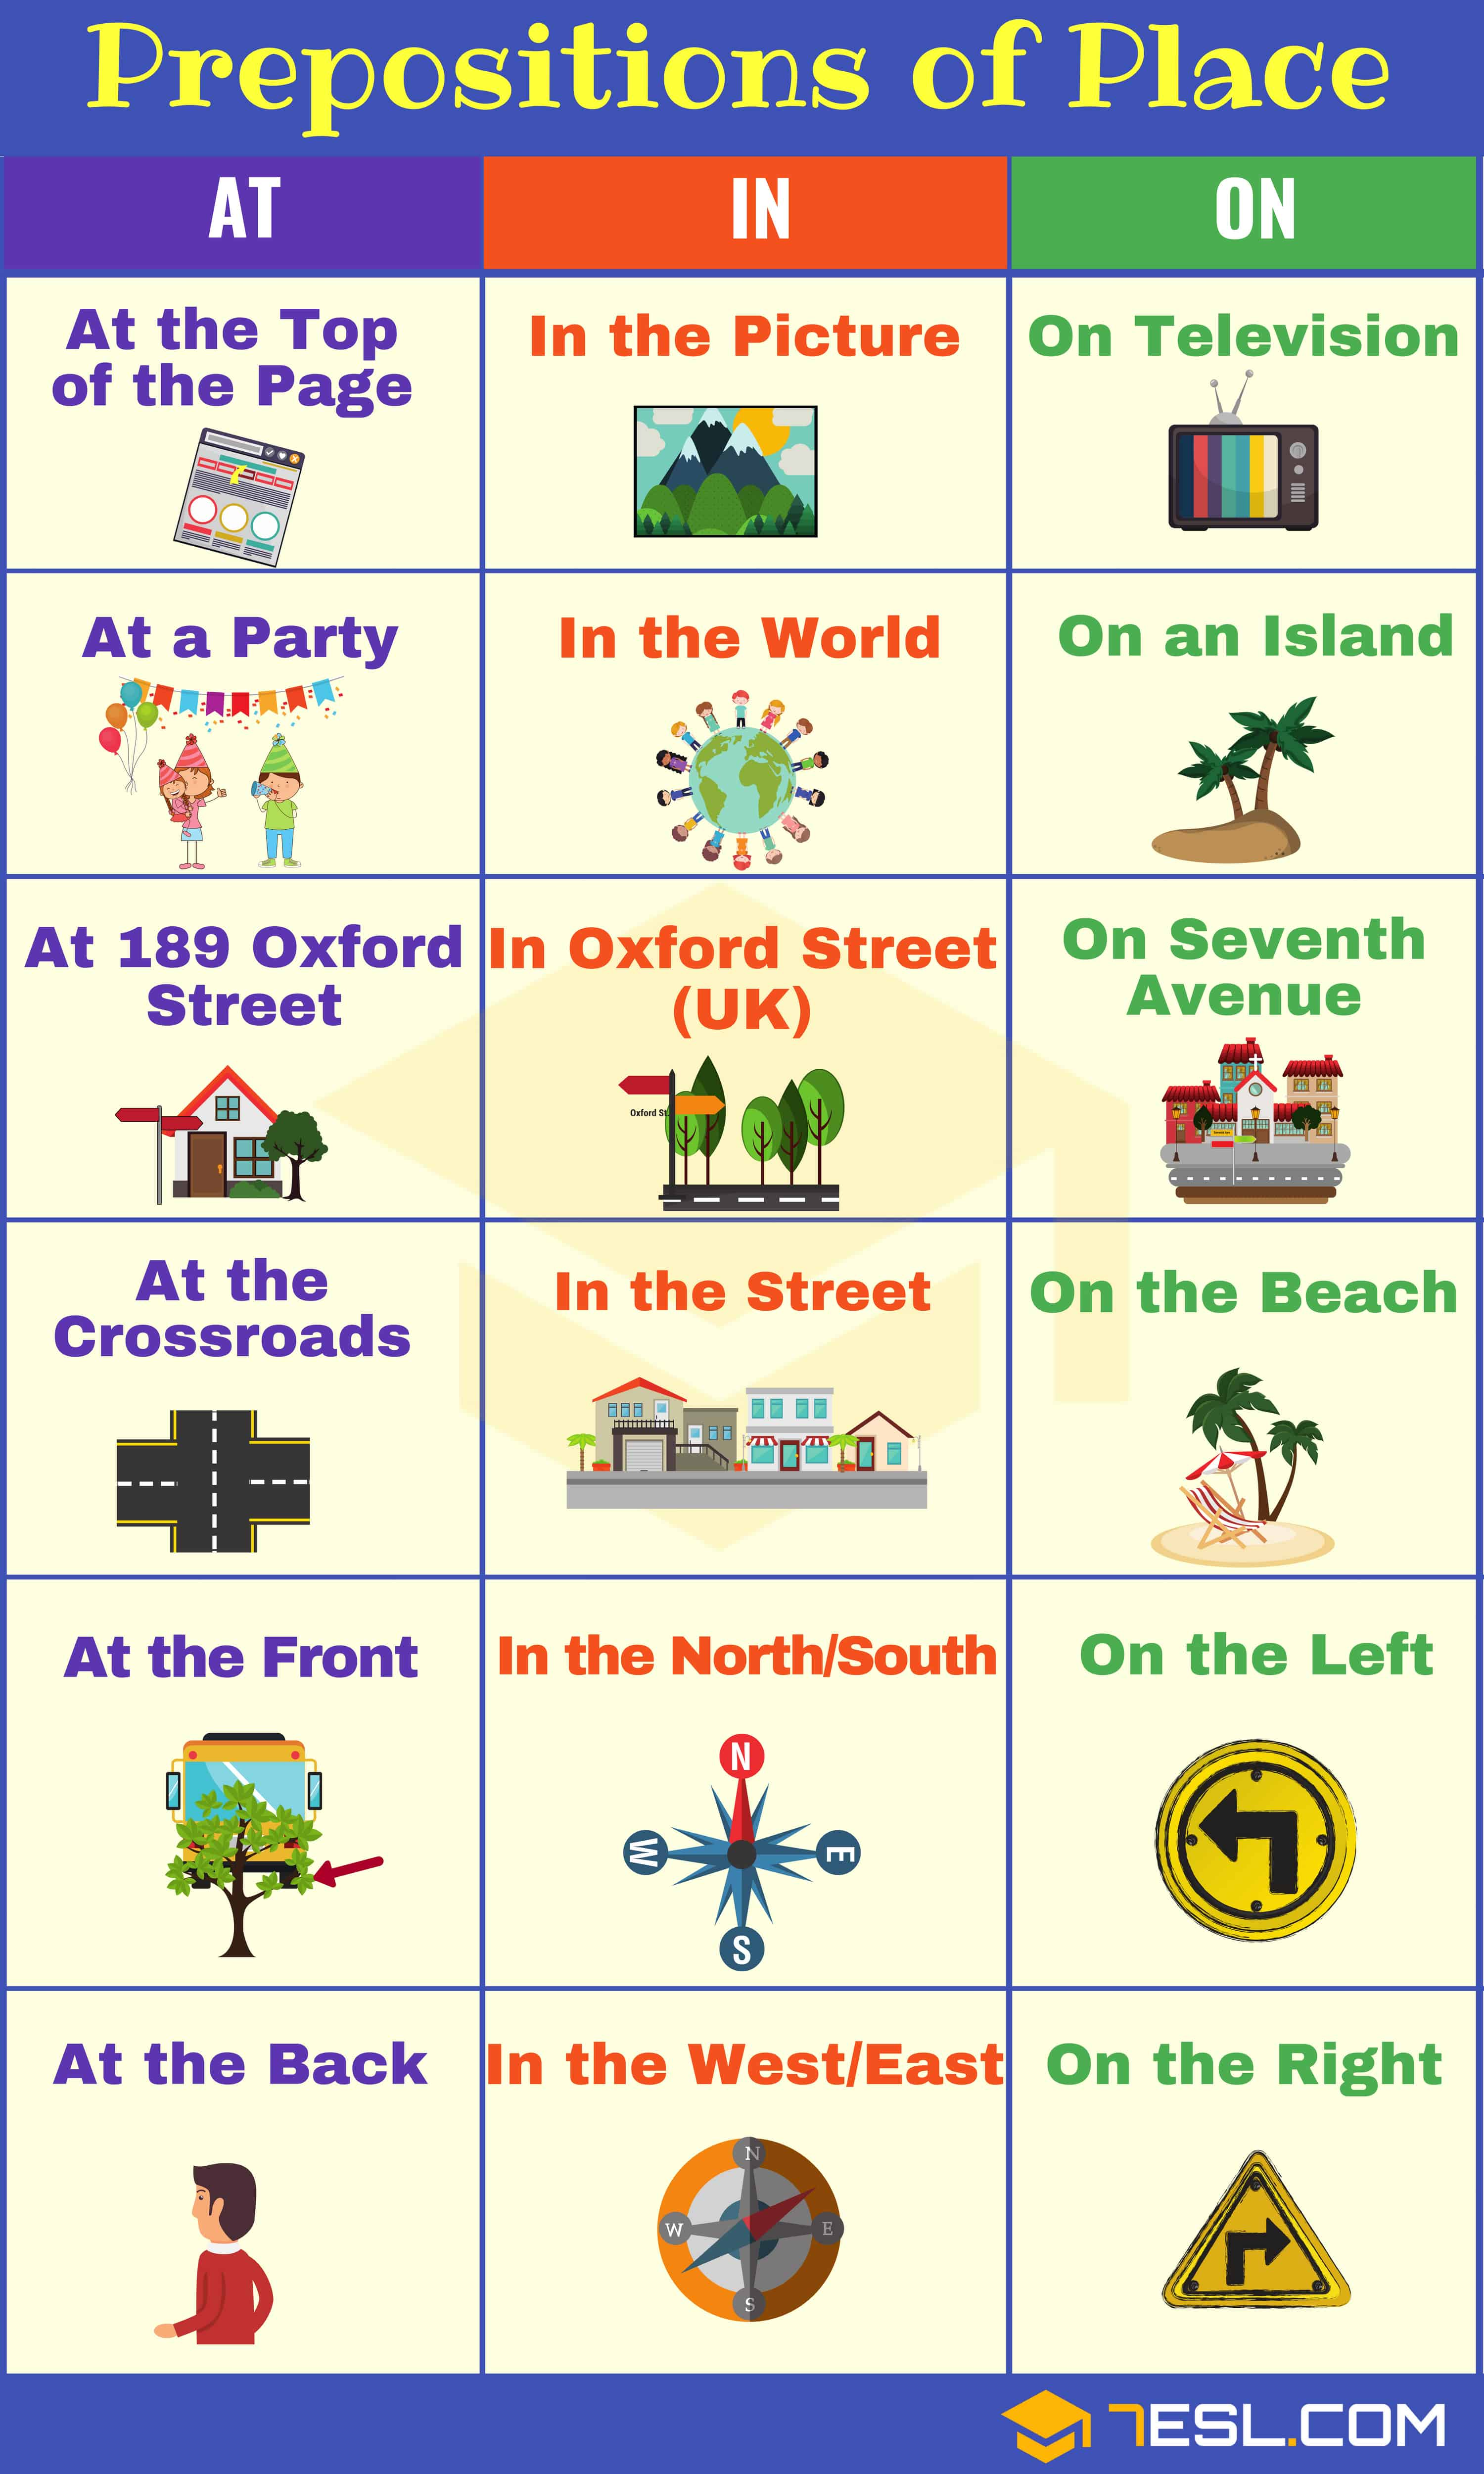 Prepositions Of Place Useful List Meaning Amp Examples 7